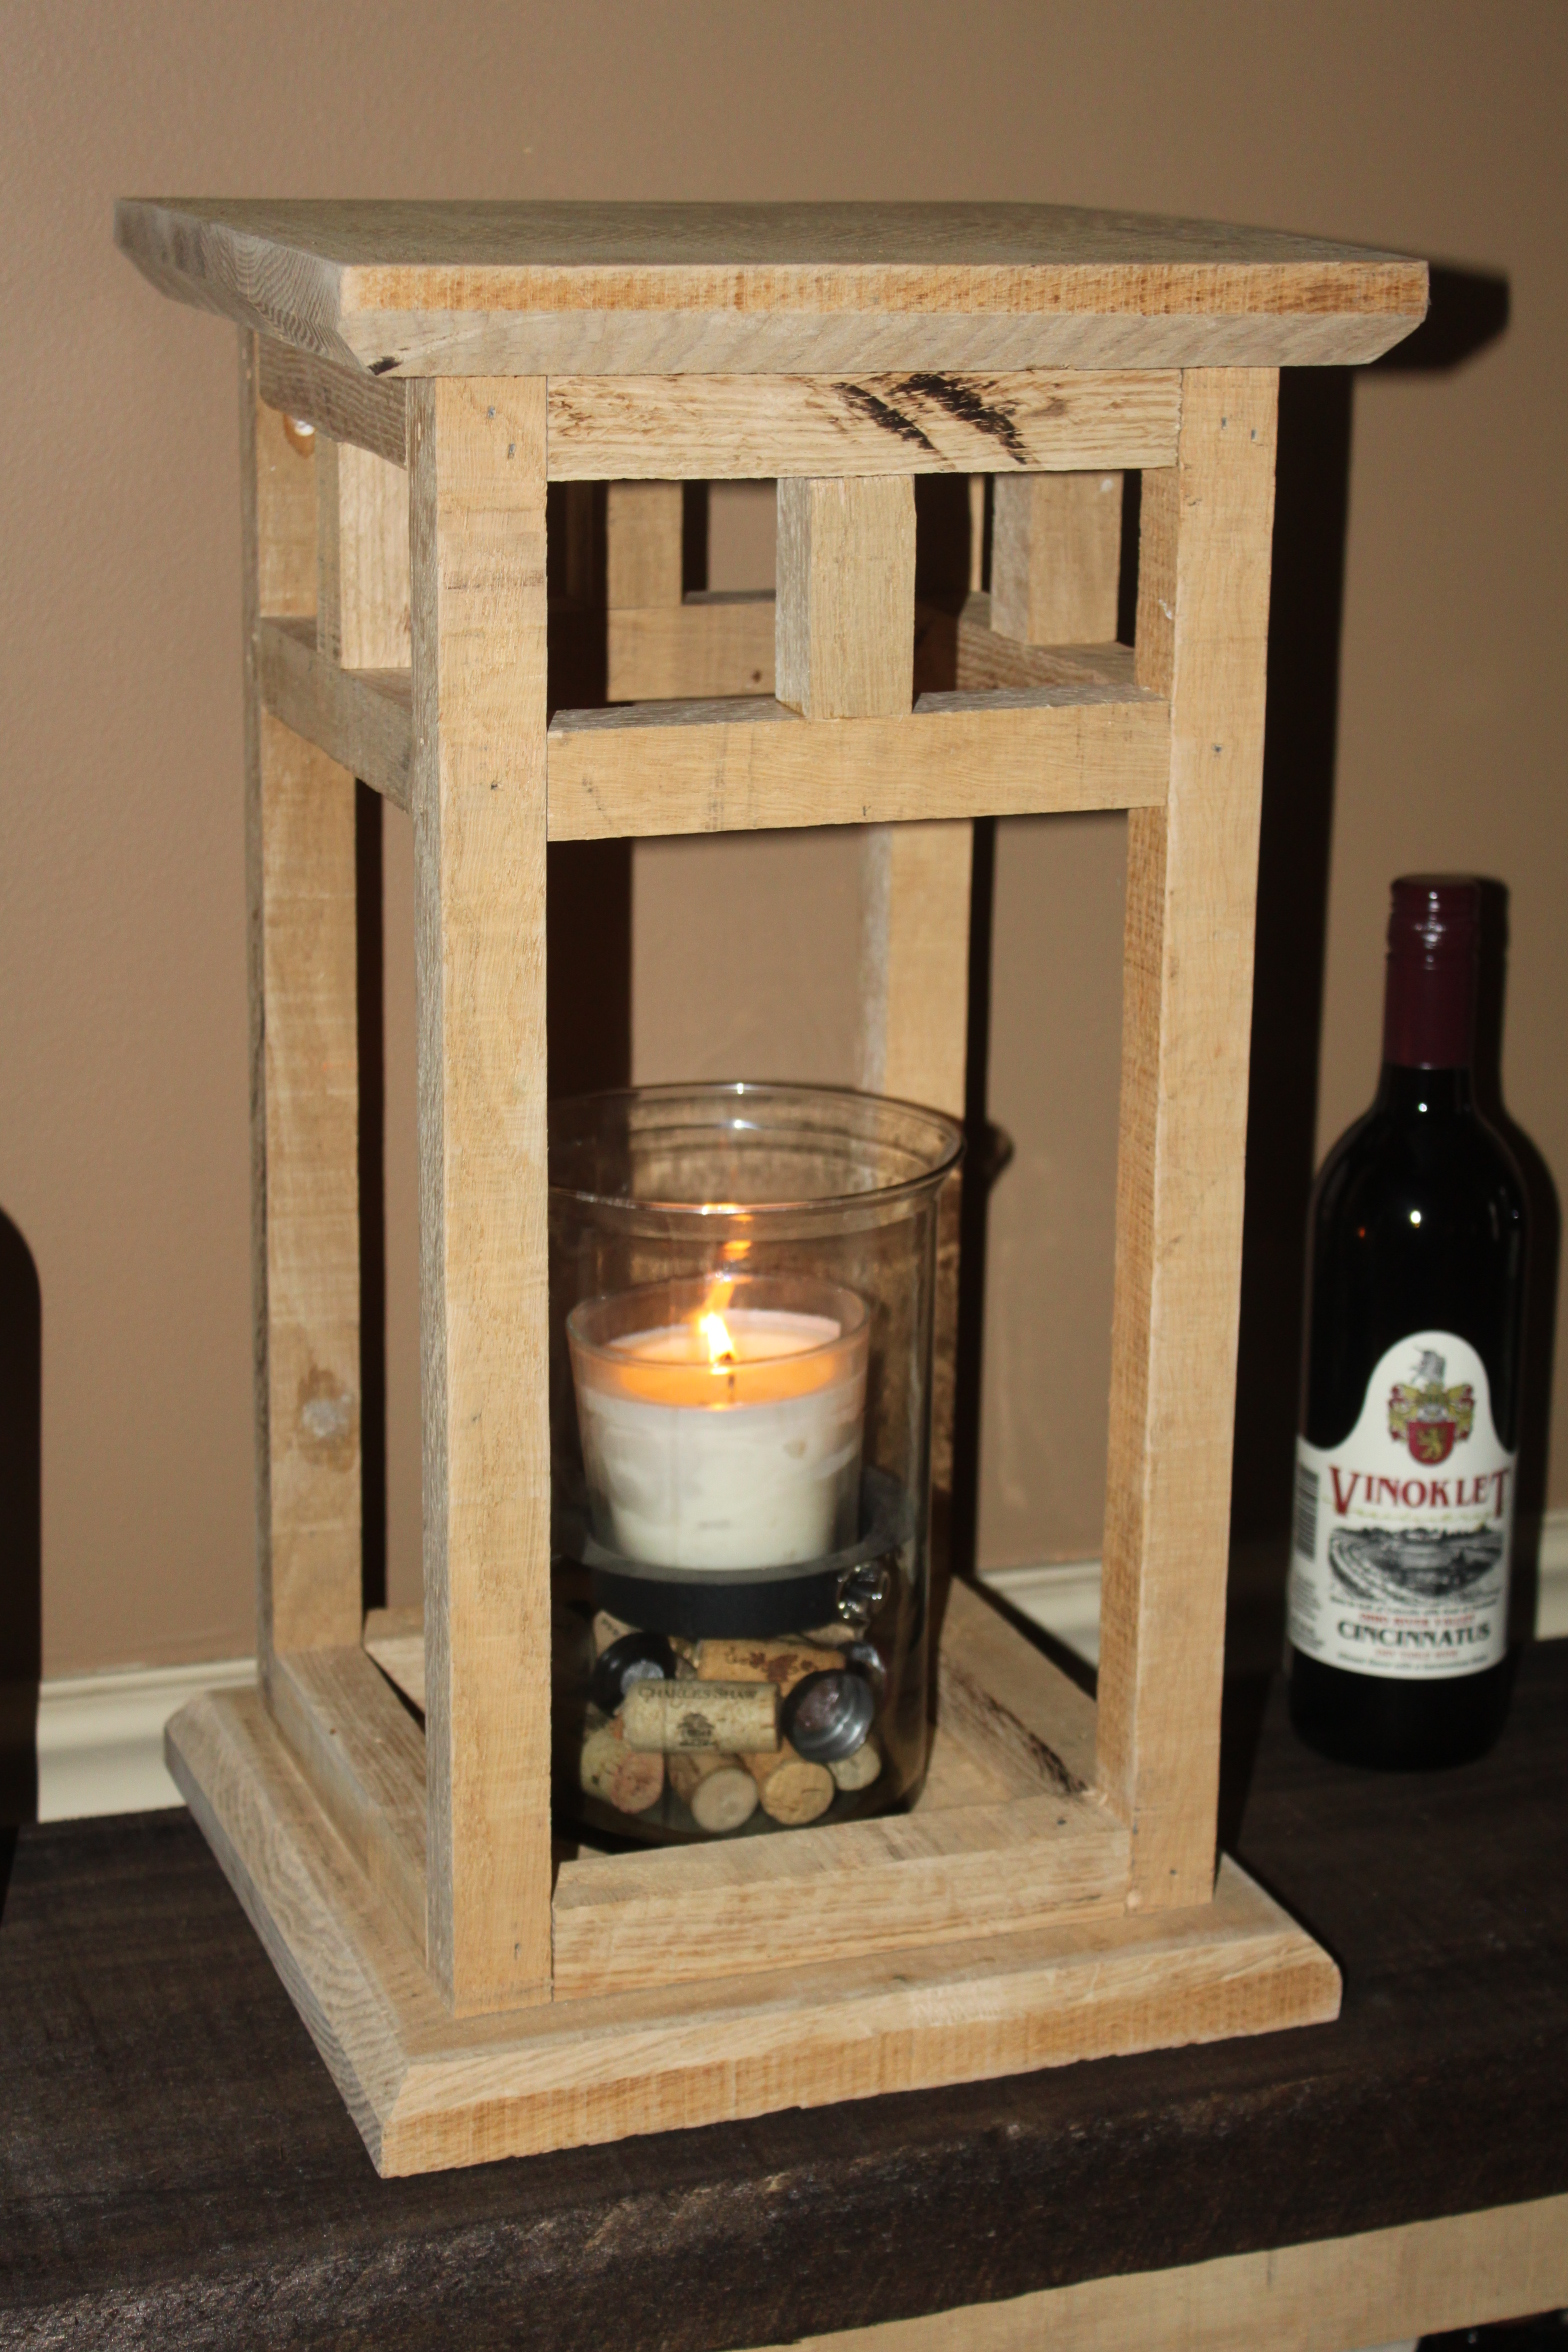 DIY Holiday Gifts You Can Make Free From Pallets! - Old World Garden ...